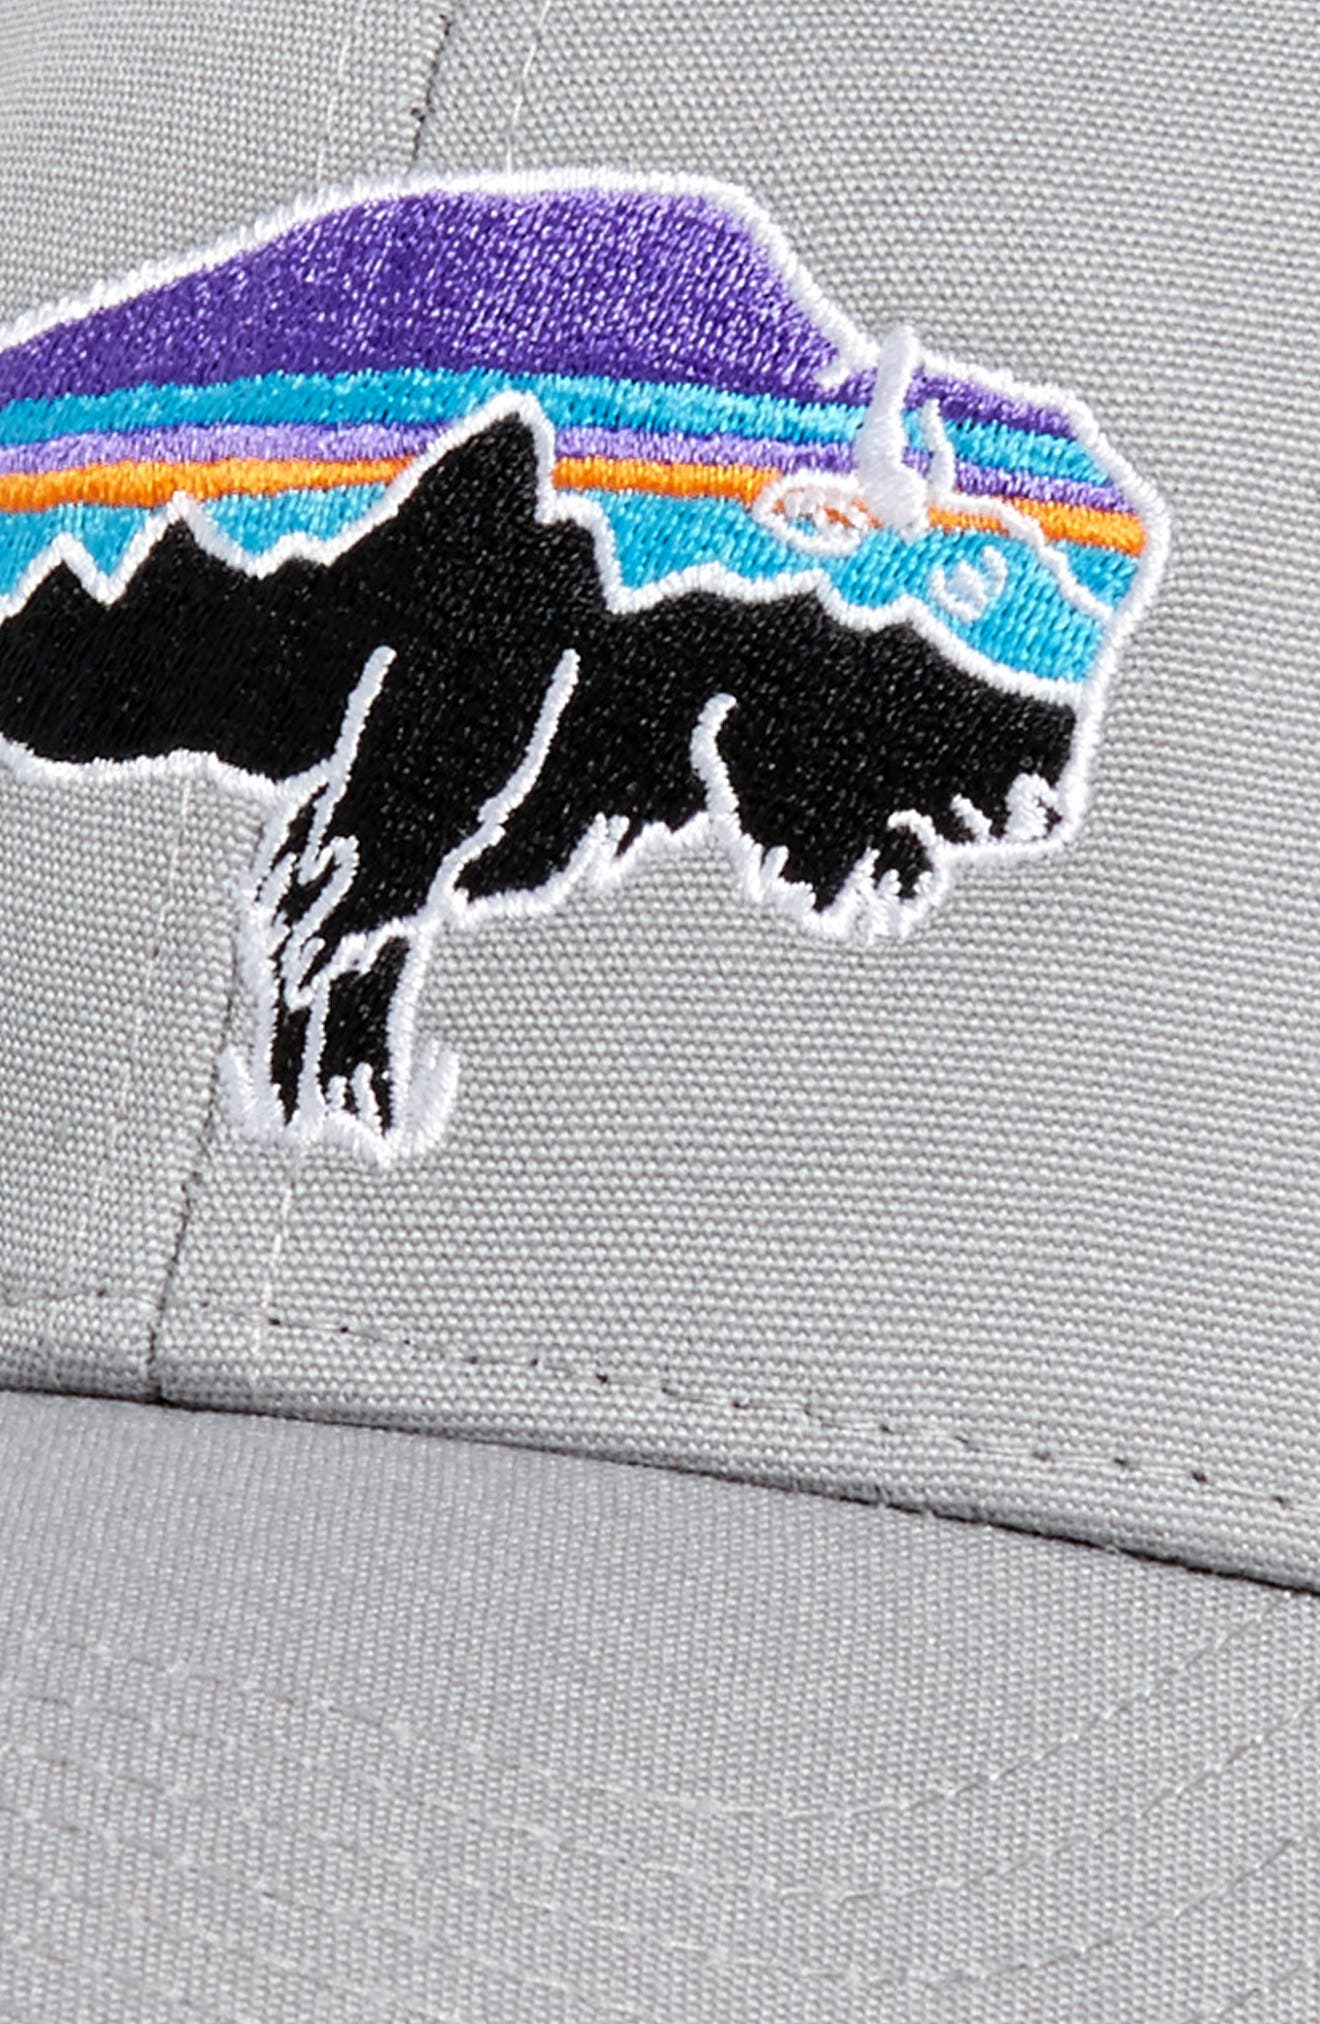 PATAGONIA,                             'Fitz Roy Bison' Trucker Hat,                             Alternate thumbnail 3, color,                             021